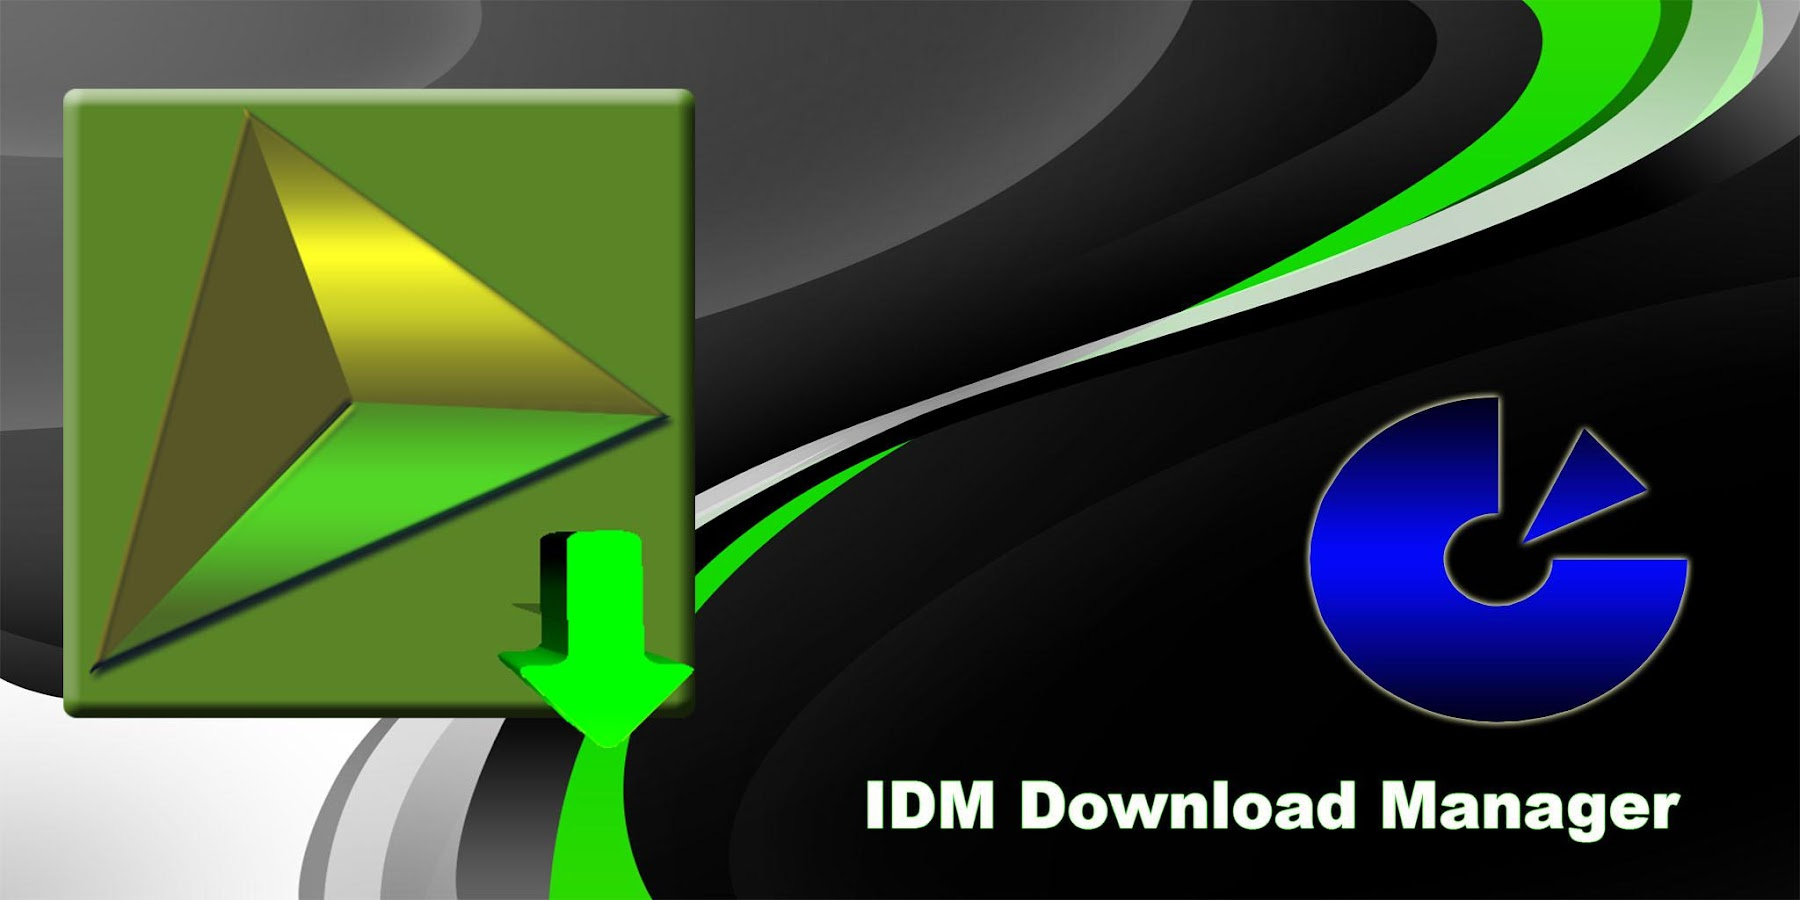 IDM Download Manager Apl Android Di Google Play